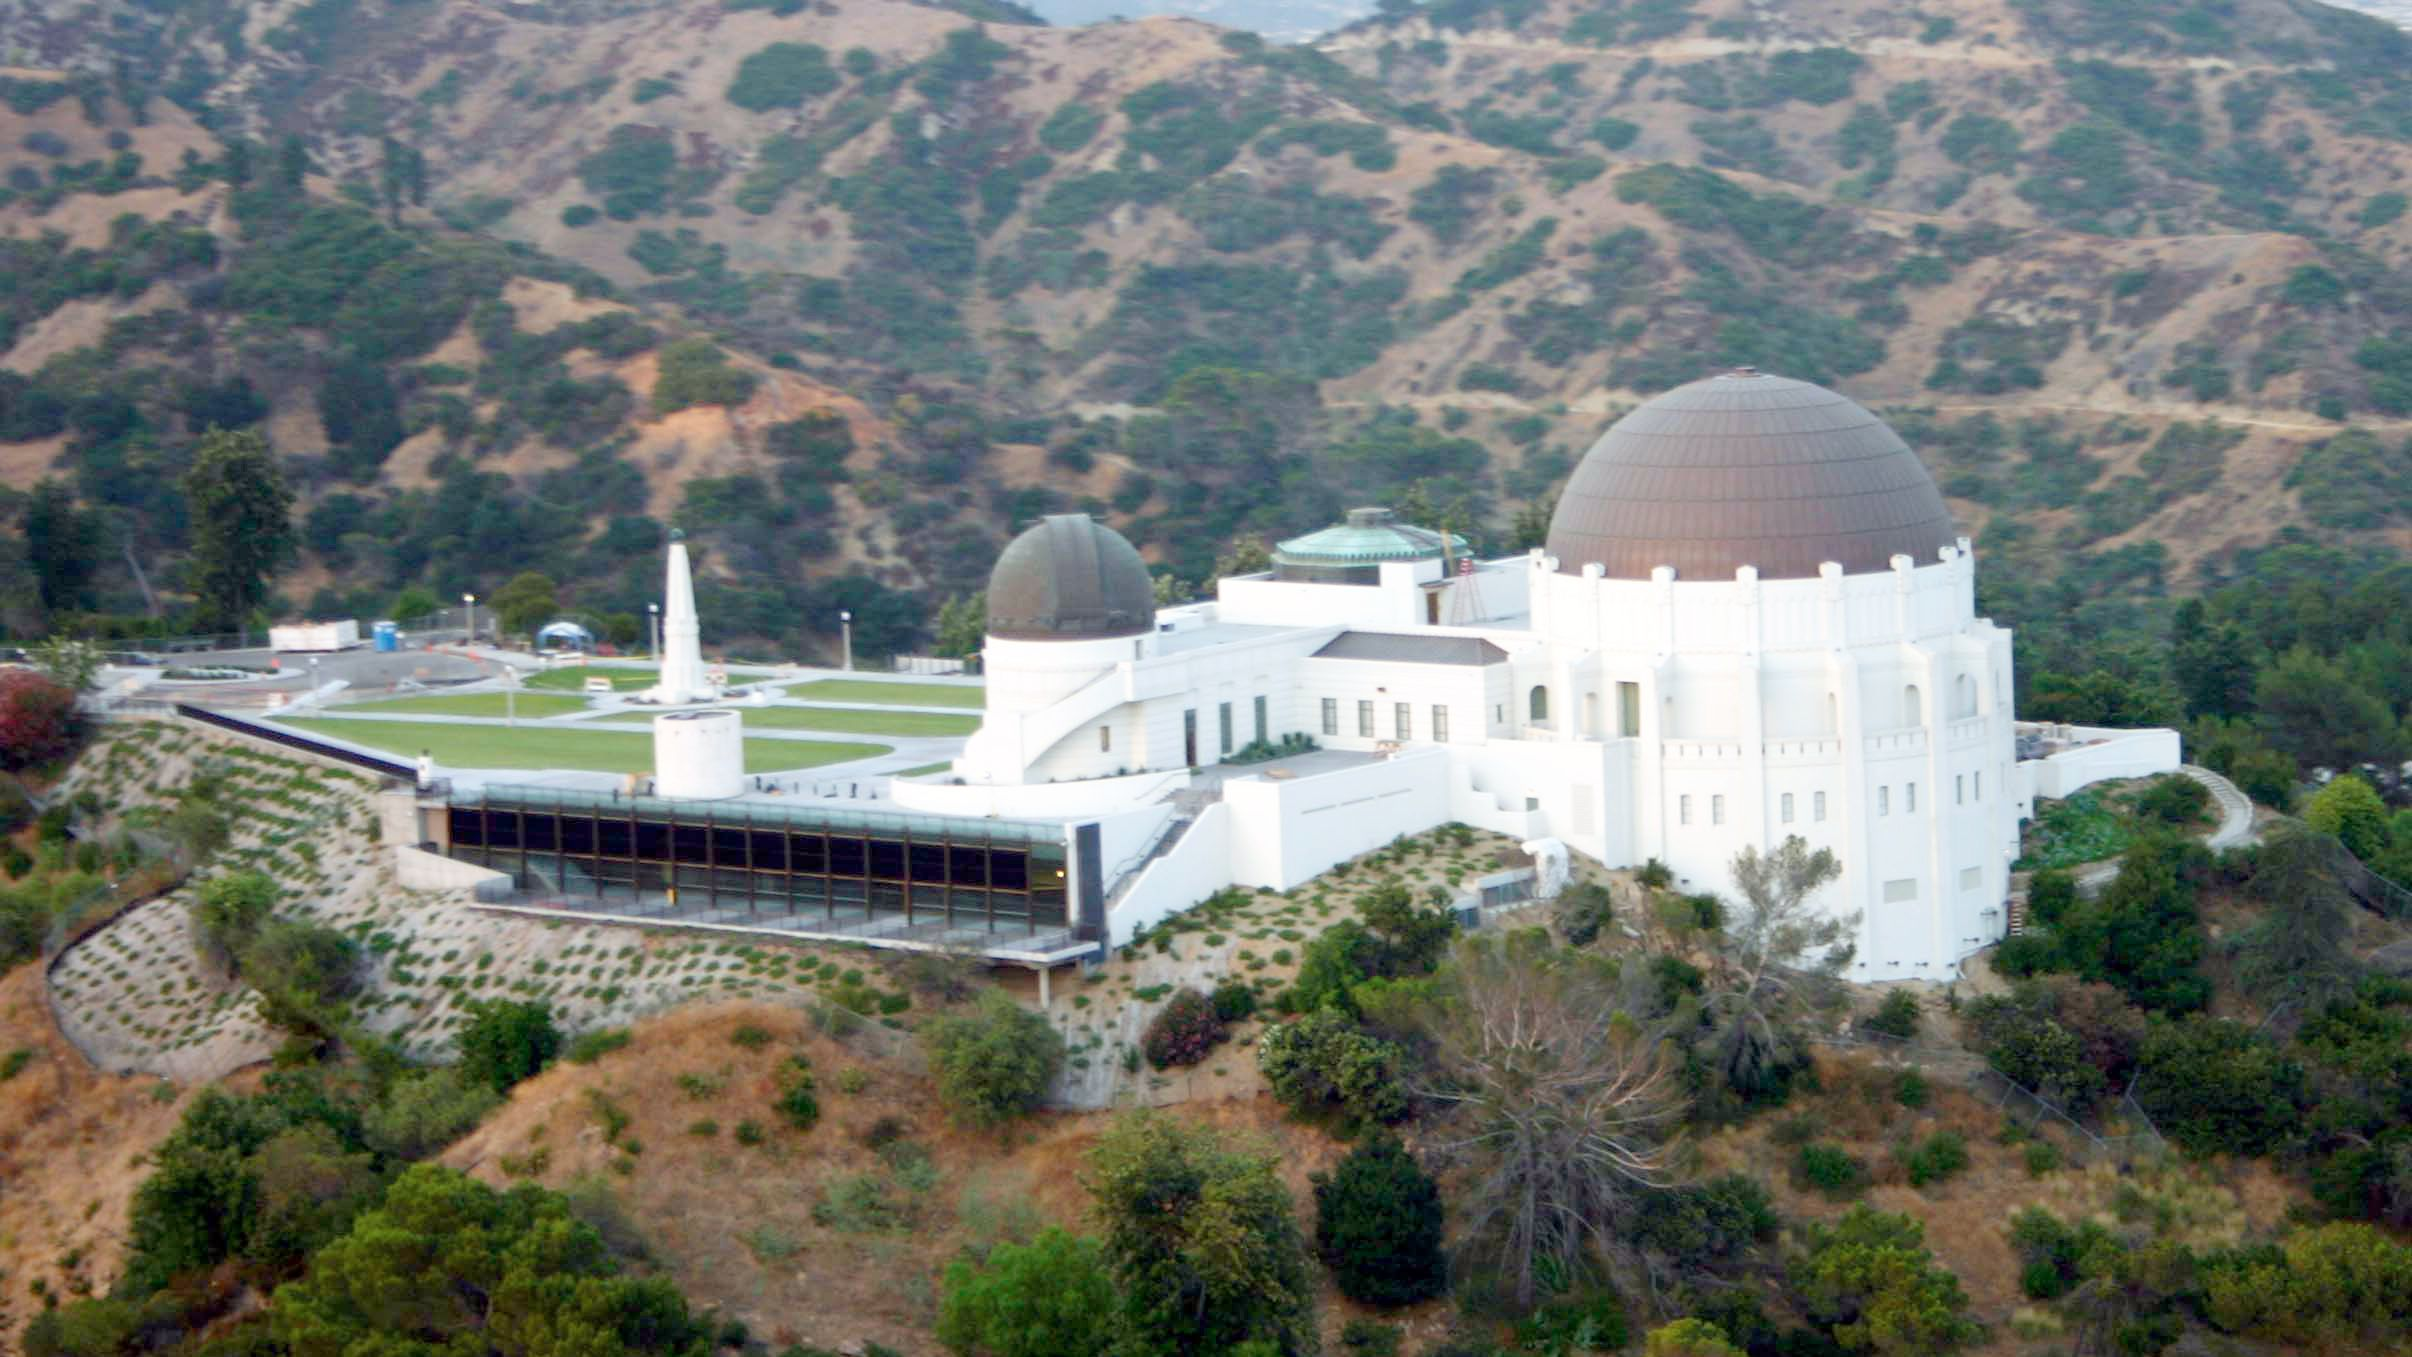 Aerial view of Griffith Observatory in Los Angeles during the day